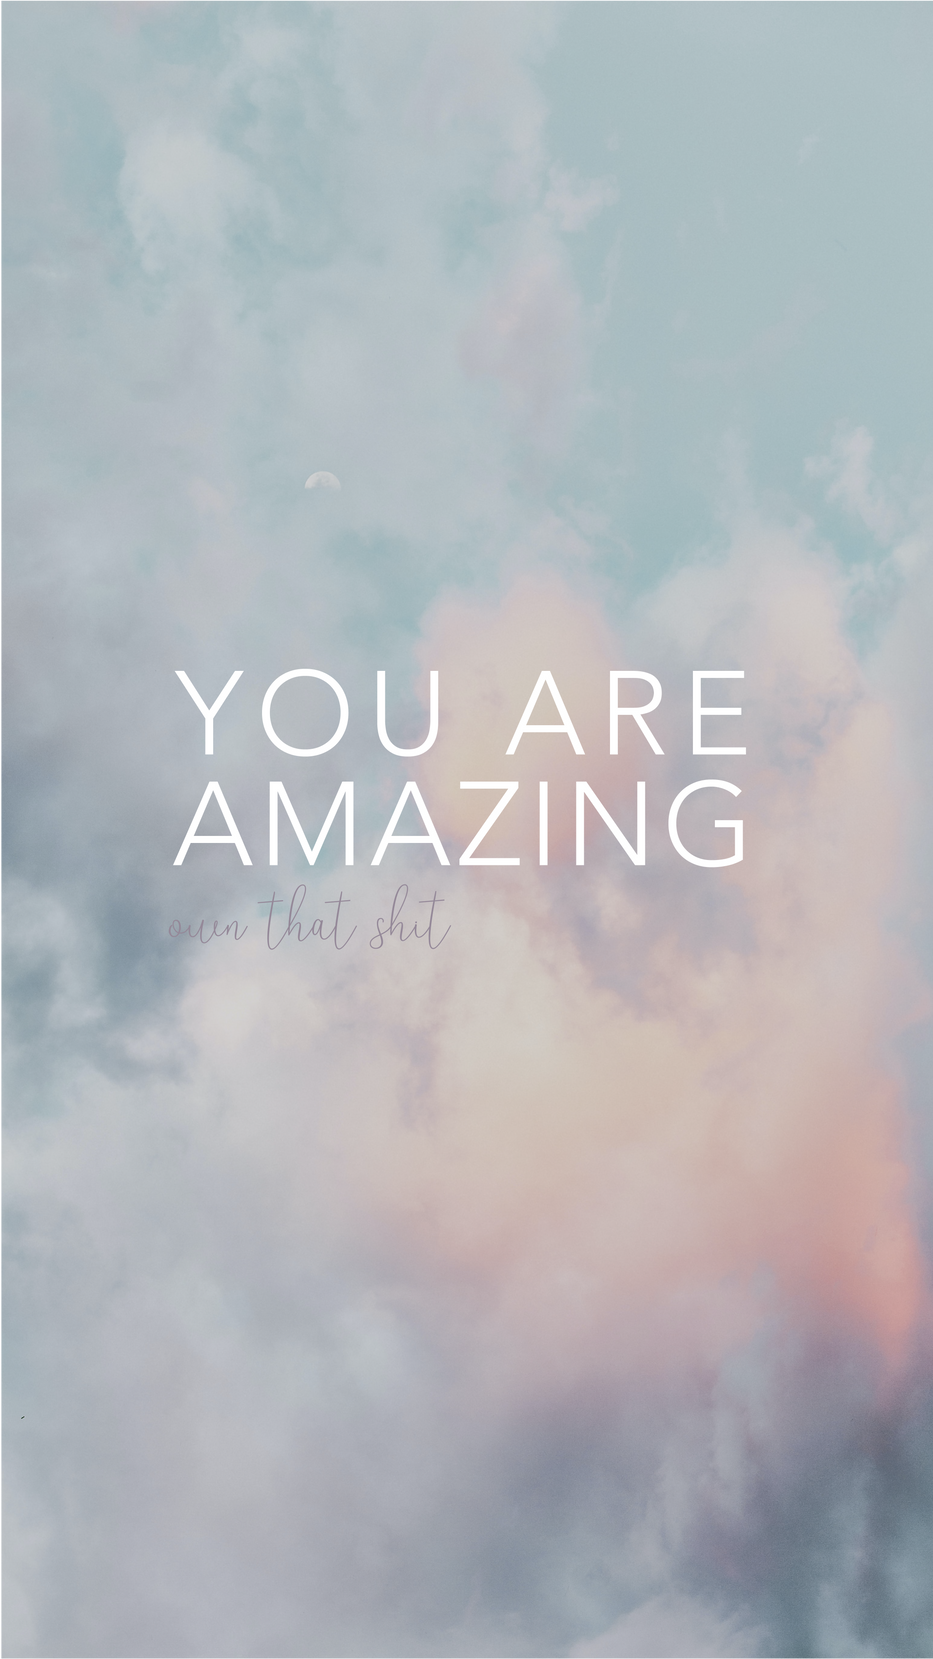 You Are Amazing Phone Wallpaper